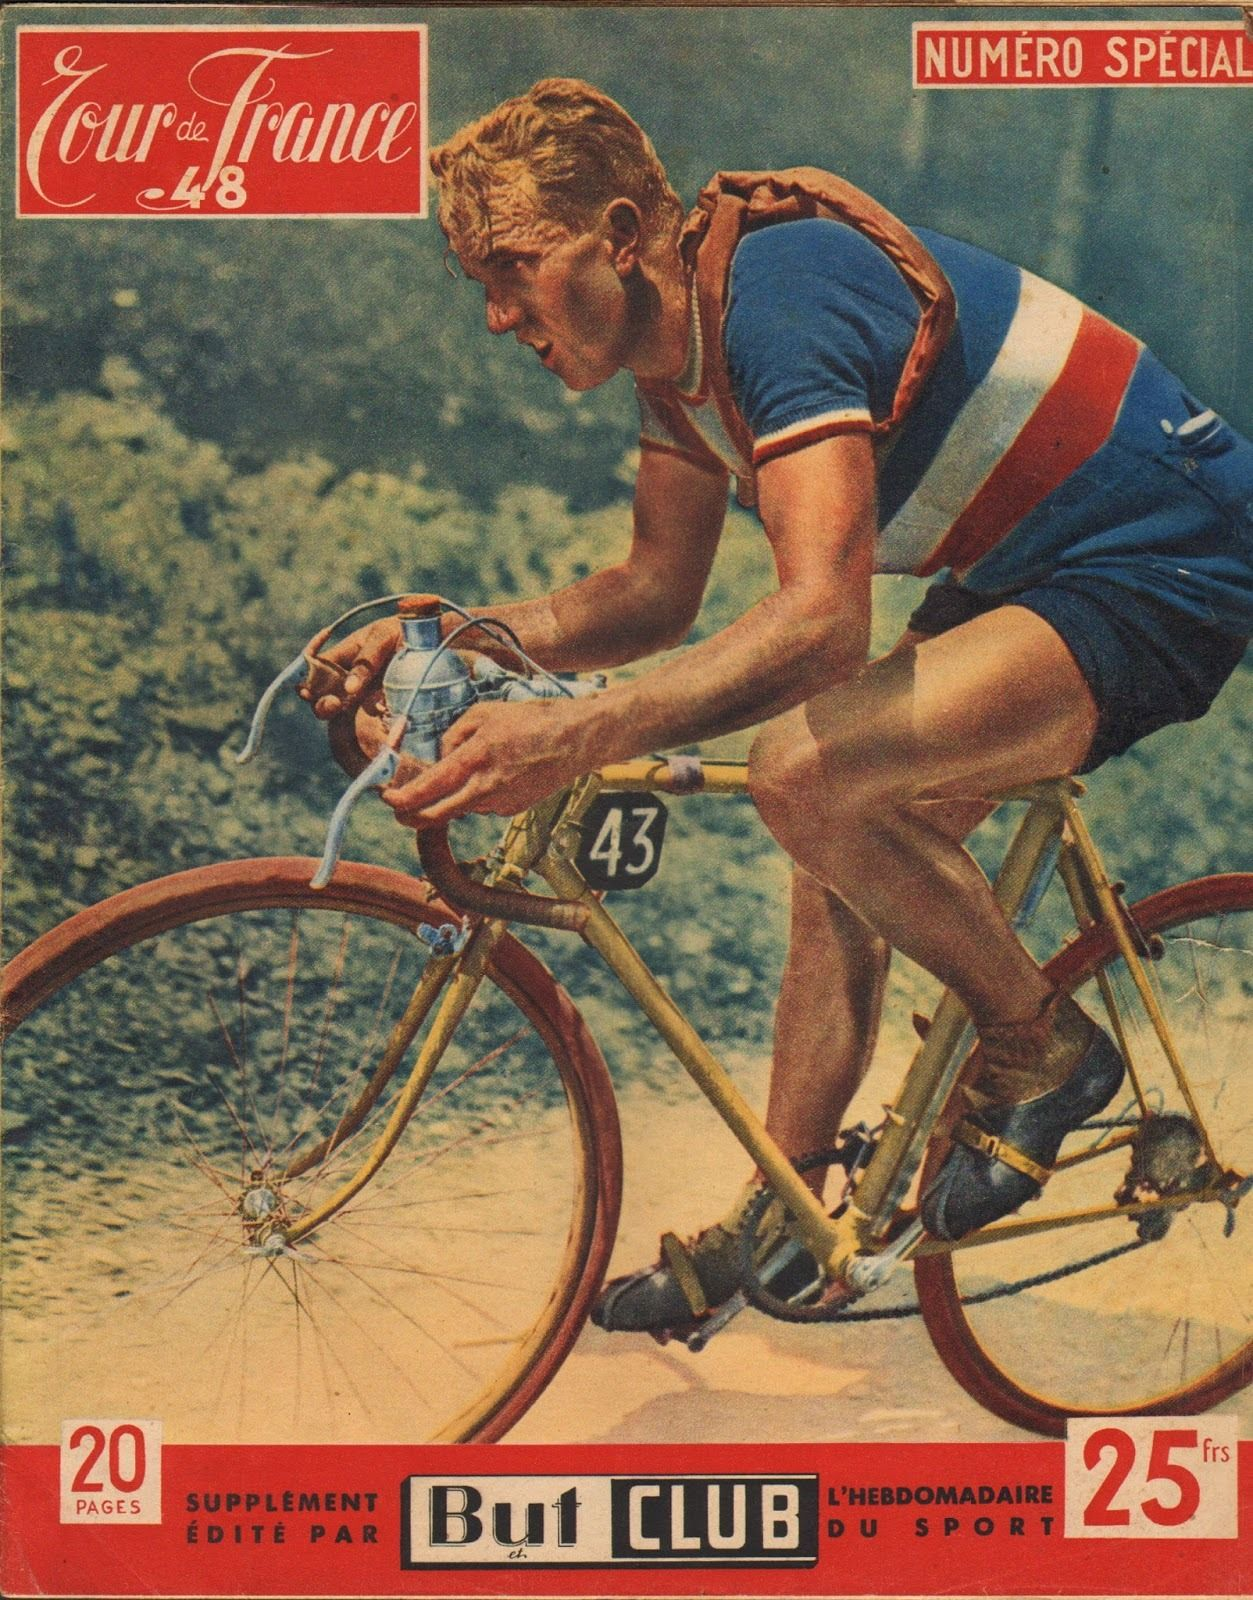 Classic Vintage Cycling In 2020 Vintage Cycles Cycling Posters Cycling Events